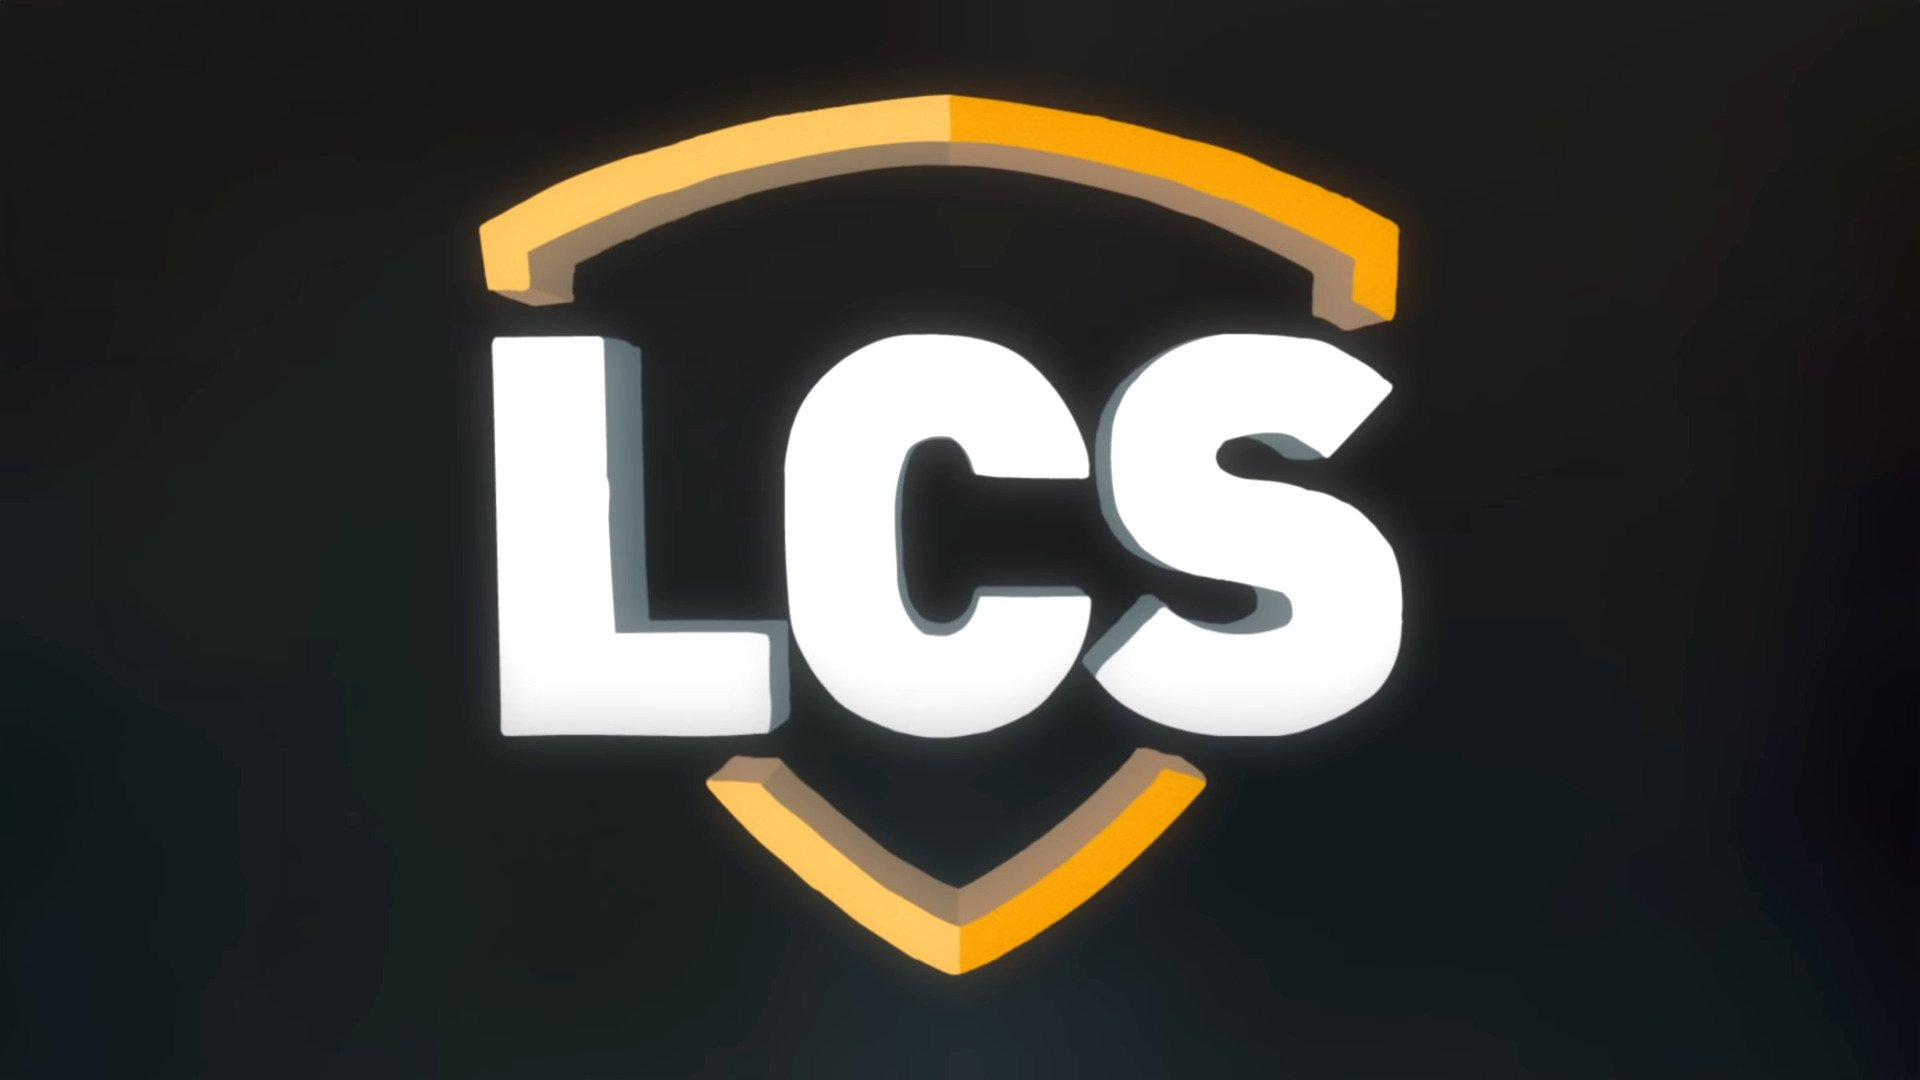 LCS – Tactical's Journey From An Academy Player To His First World Championship Appearance This Year